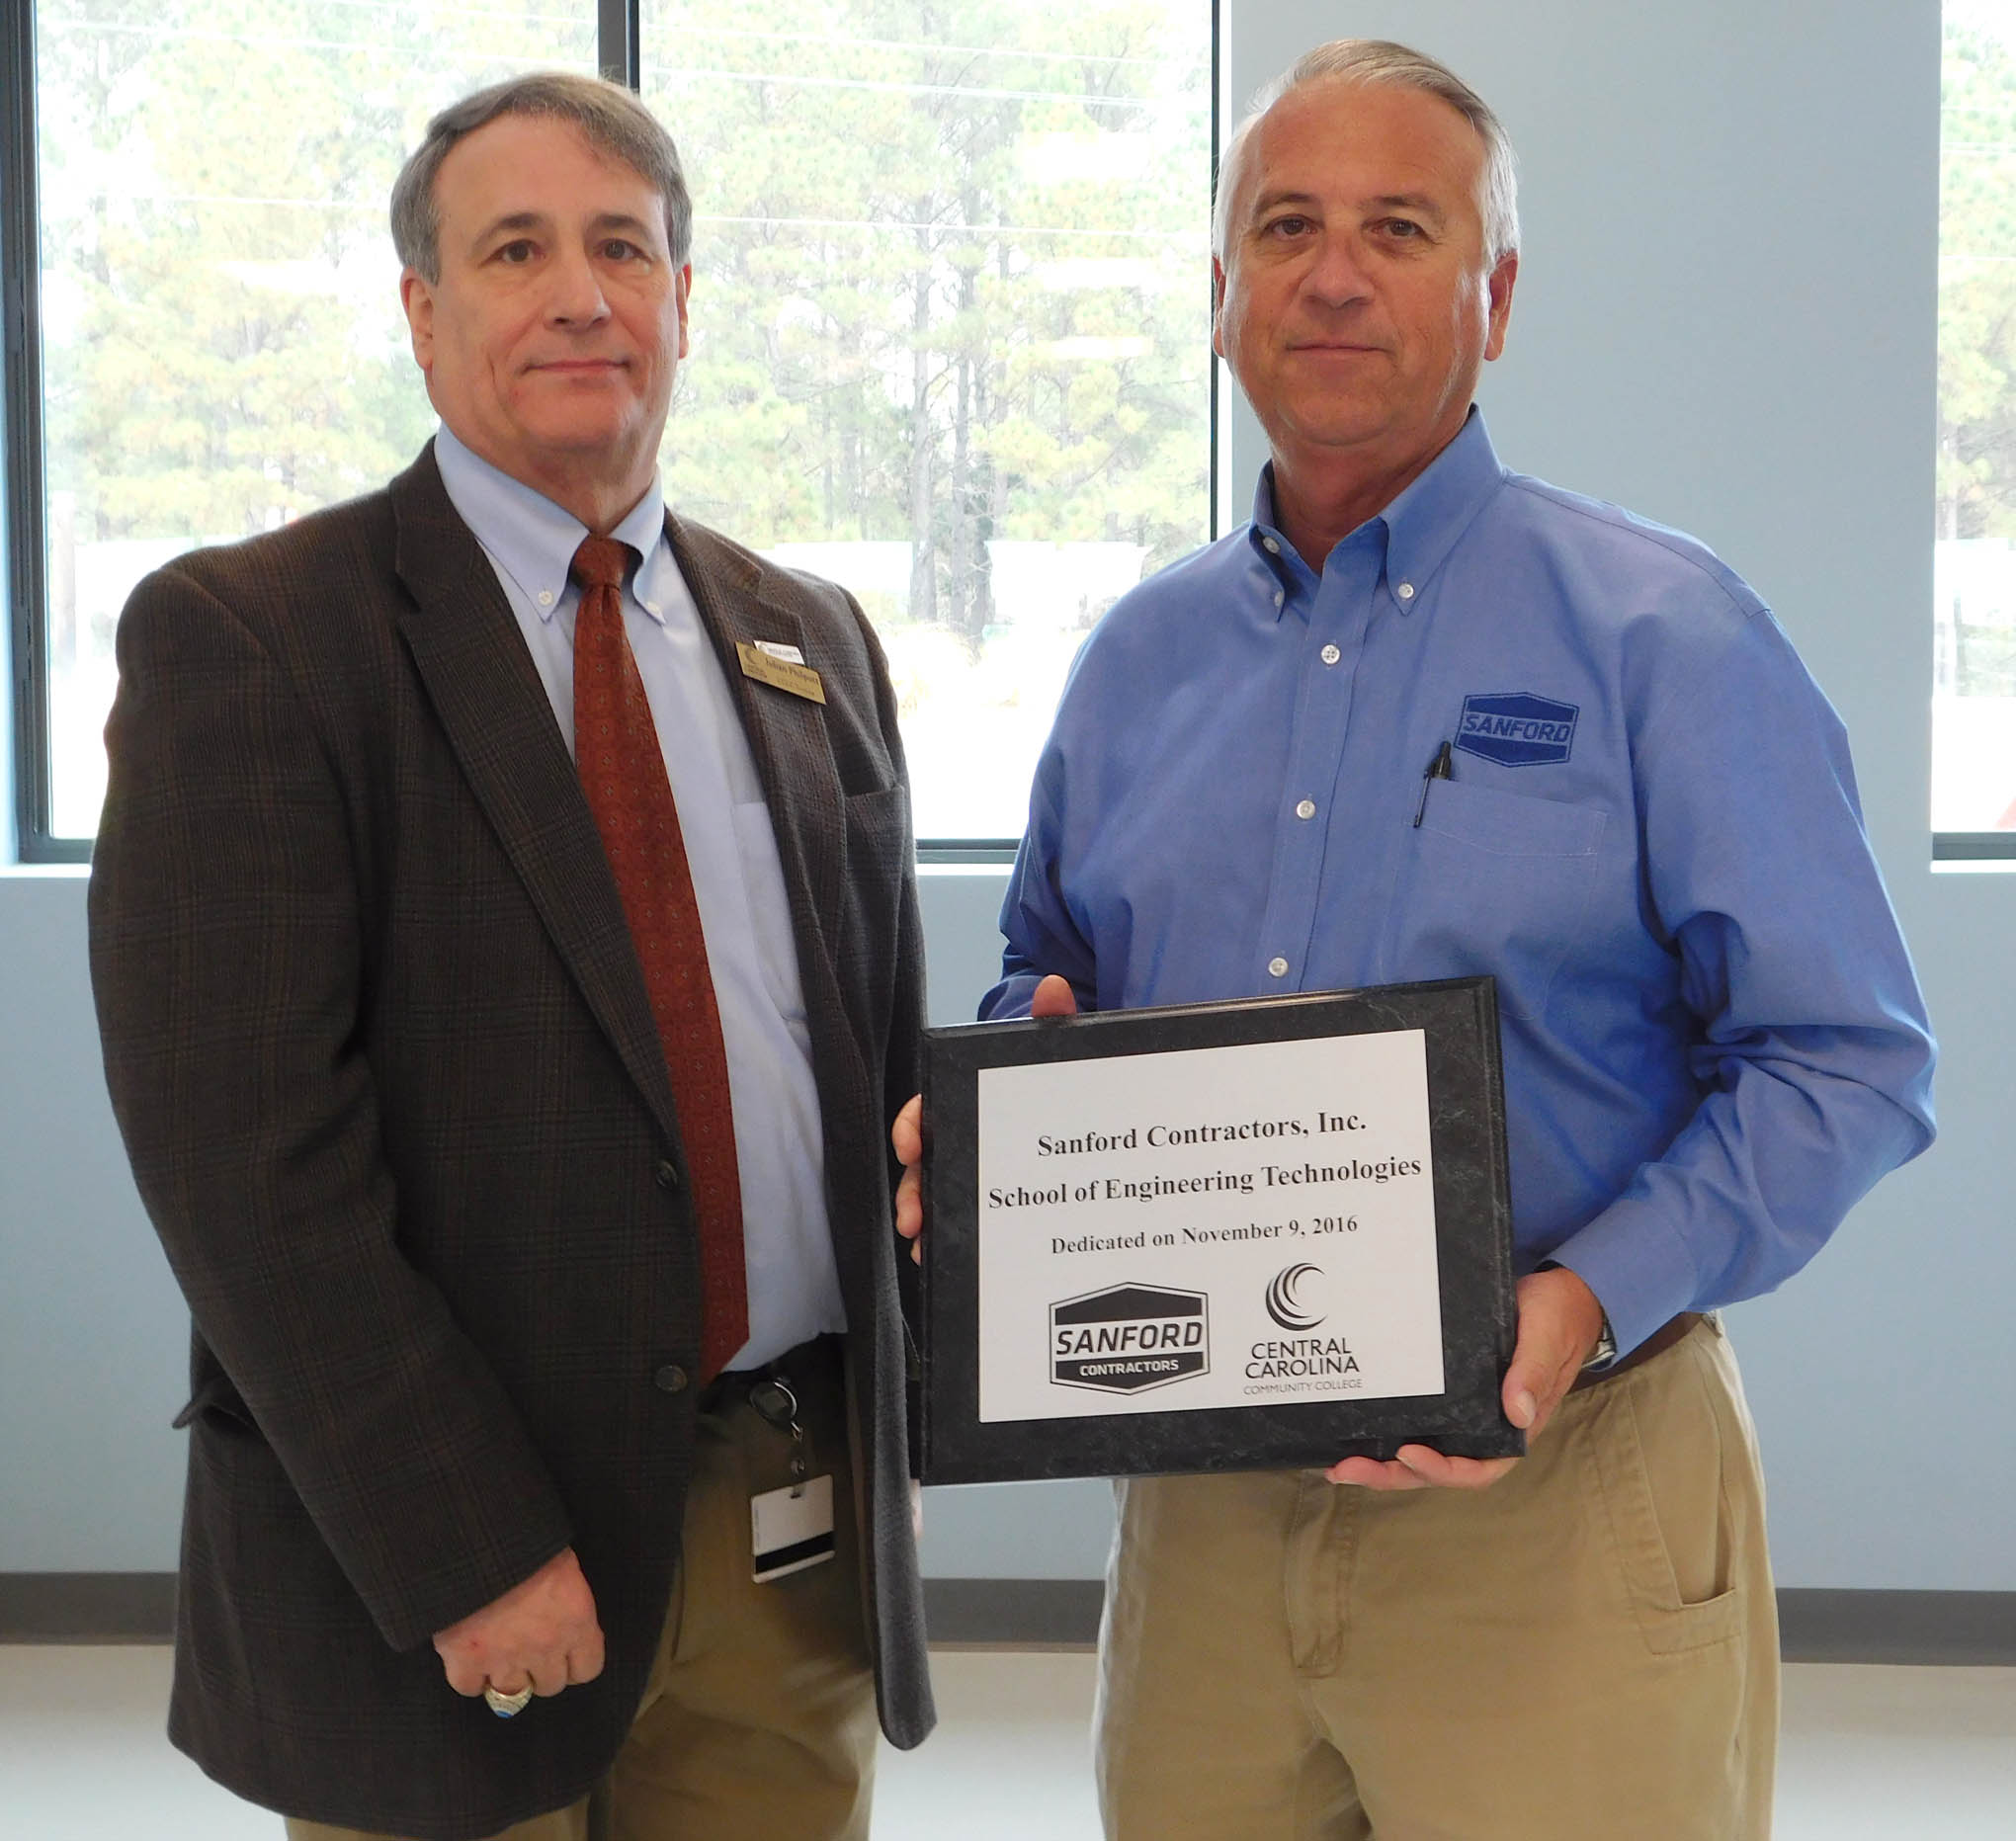 CCCC Engineering Technology Program named in honor of Sanford Contractors, Inc.